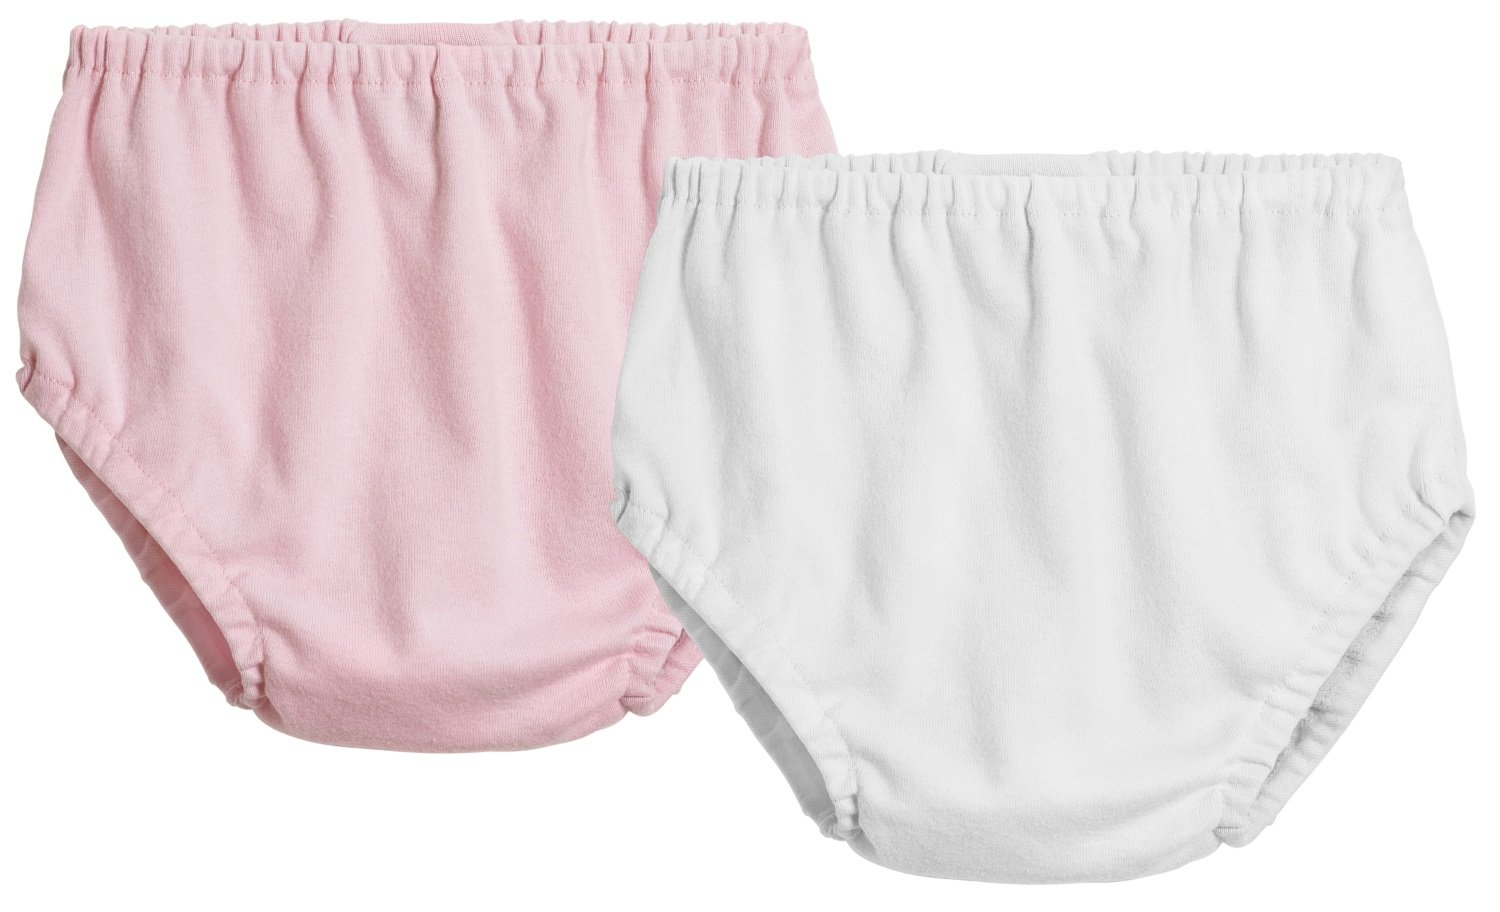 City Threads 2-Pack Baby Girls' and Baby Boys' Unisex Diaper Covers Bloomers Soft Cotton, Pink/White, 3/6 m